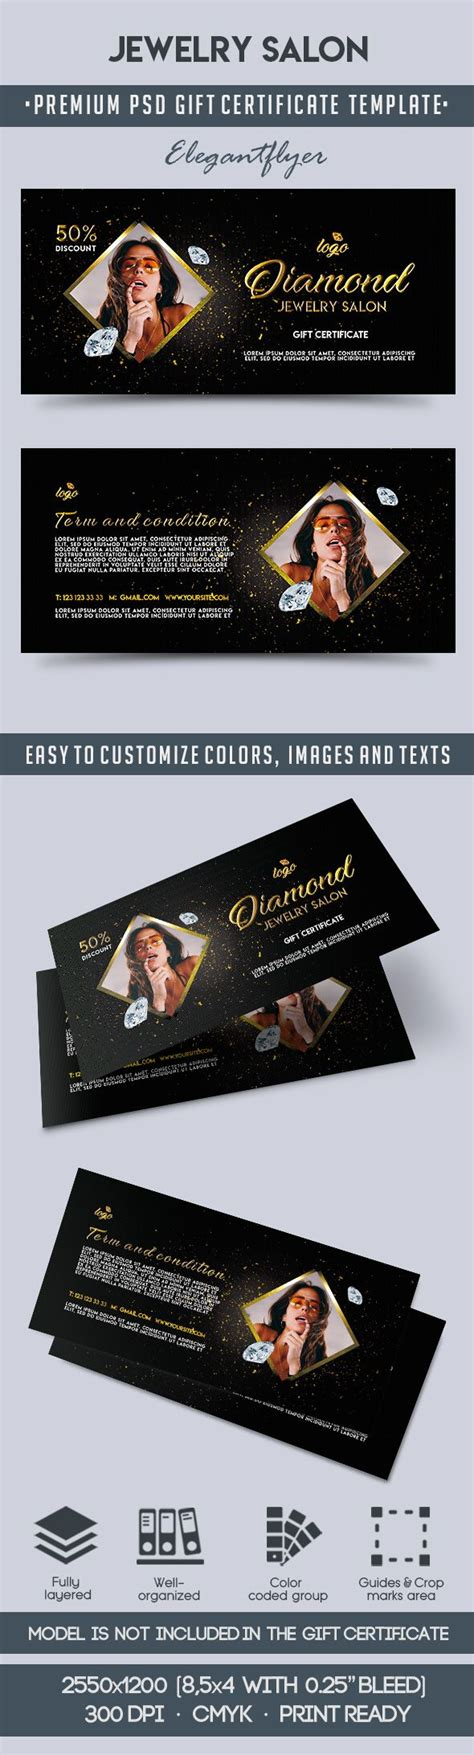 gift card template psd jewelry salon voucher in psd by elegantflyer